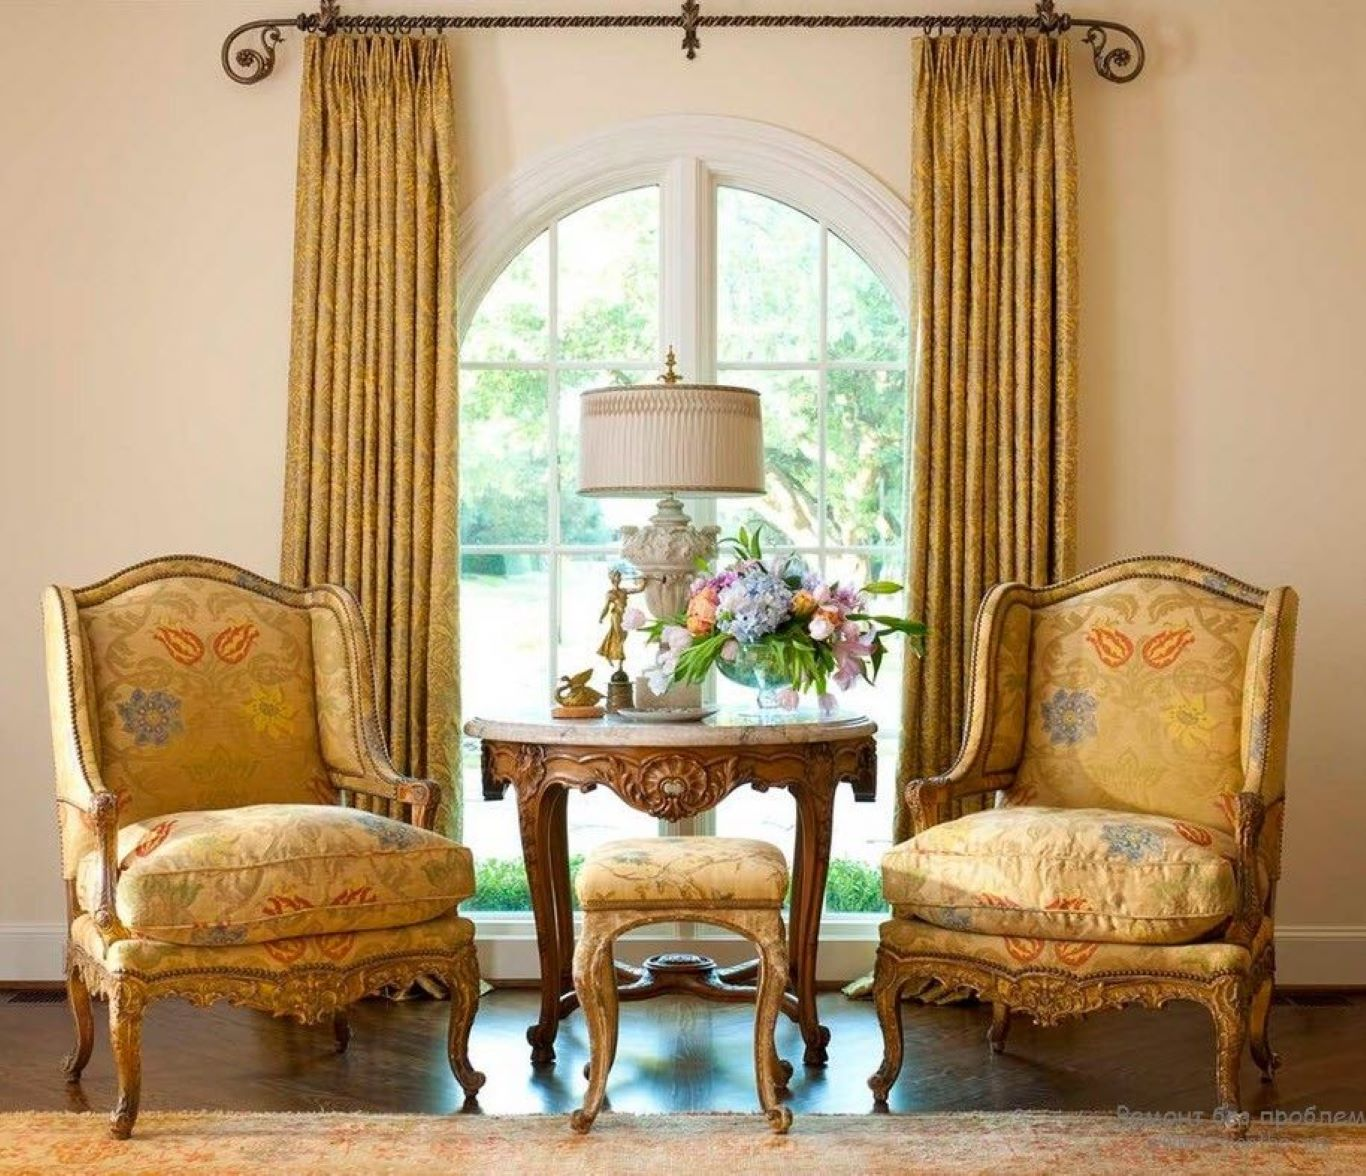 Intricate-design floor-to-ceiling curtains and two matching-toned ornate wooden chairs in a Victorian style lounge.